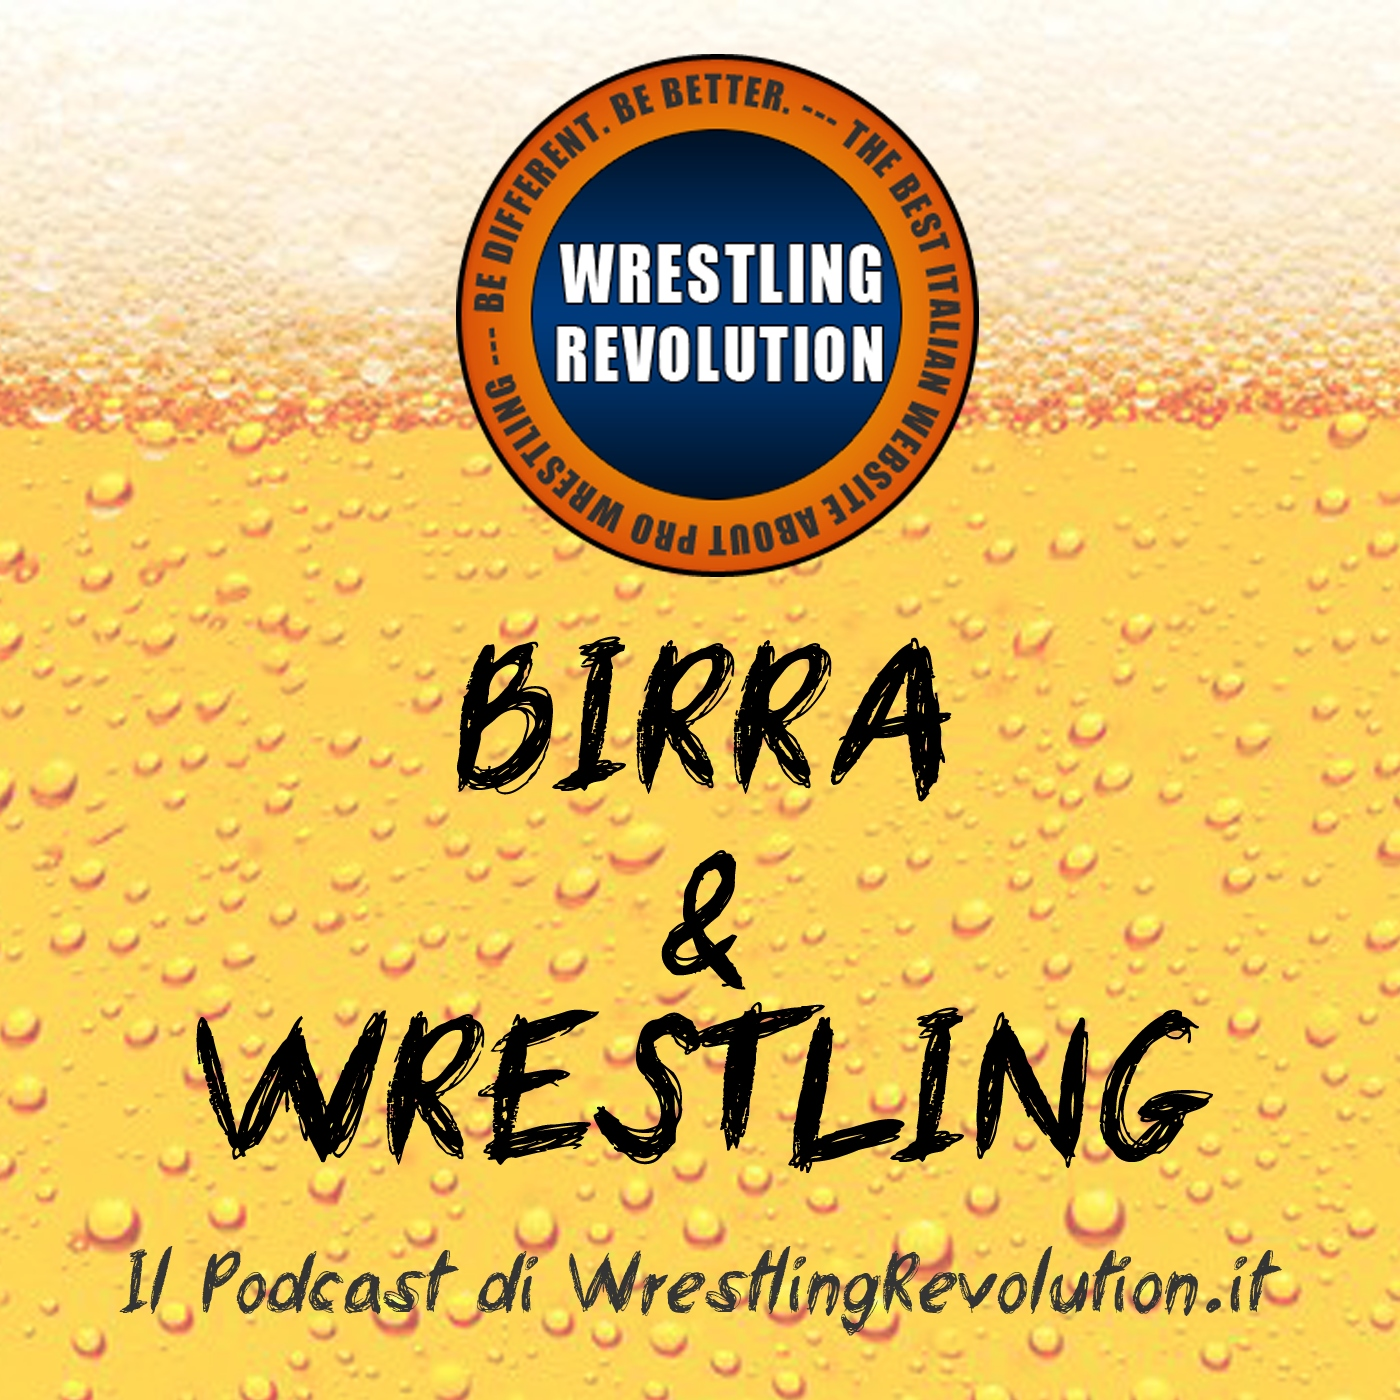 Birra & Wrestling: il Podcast